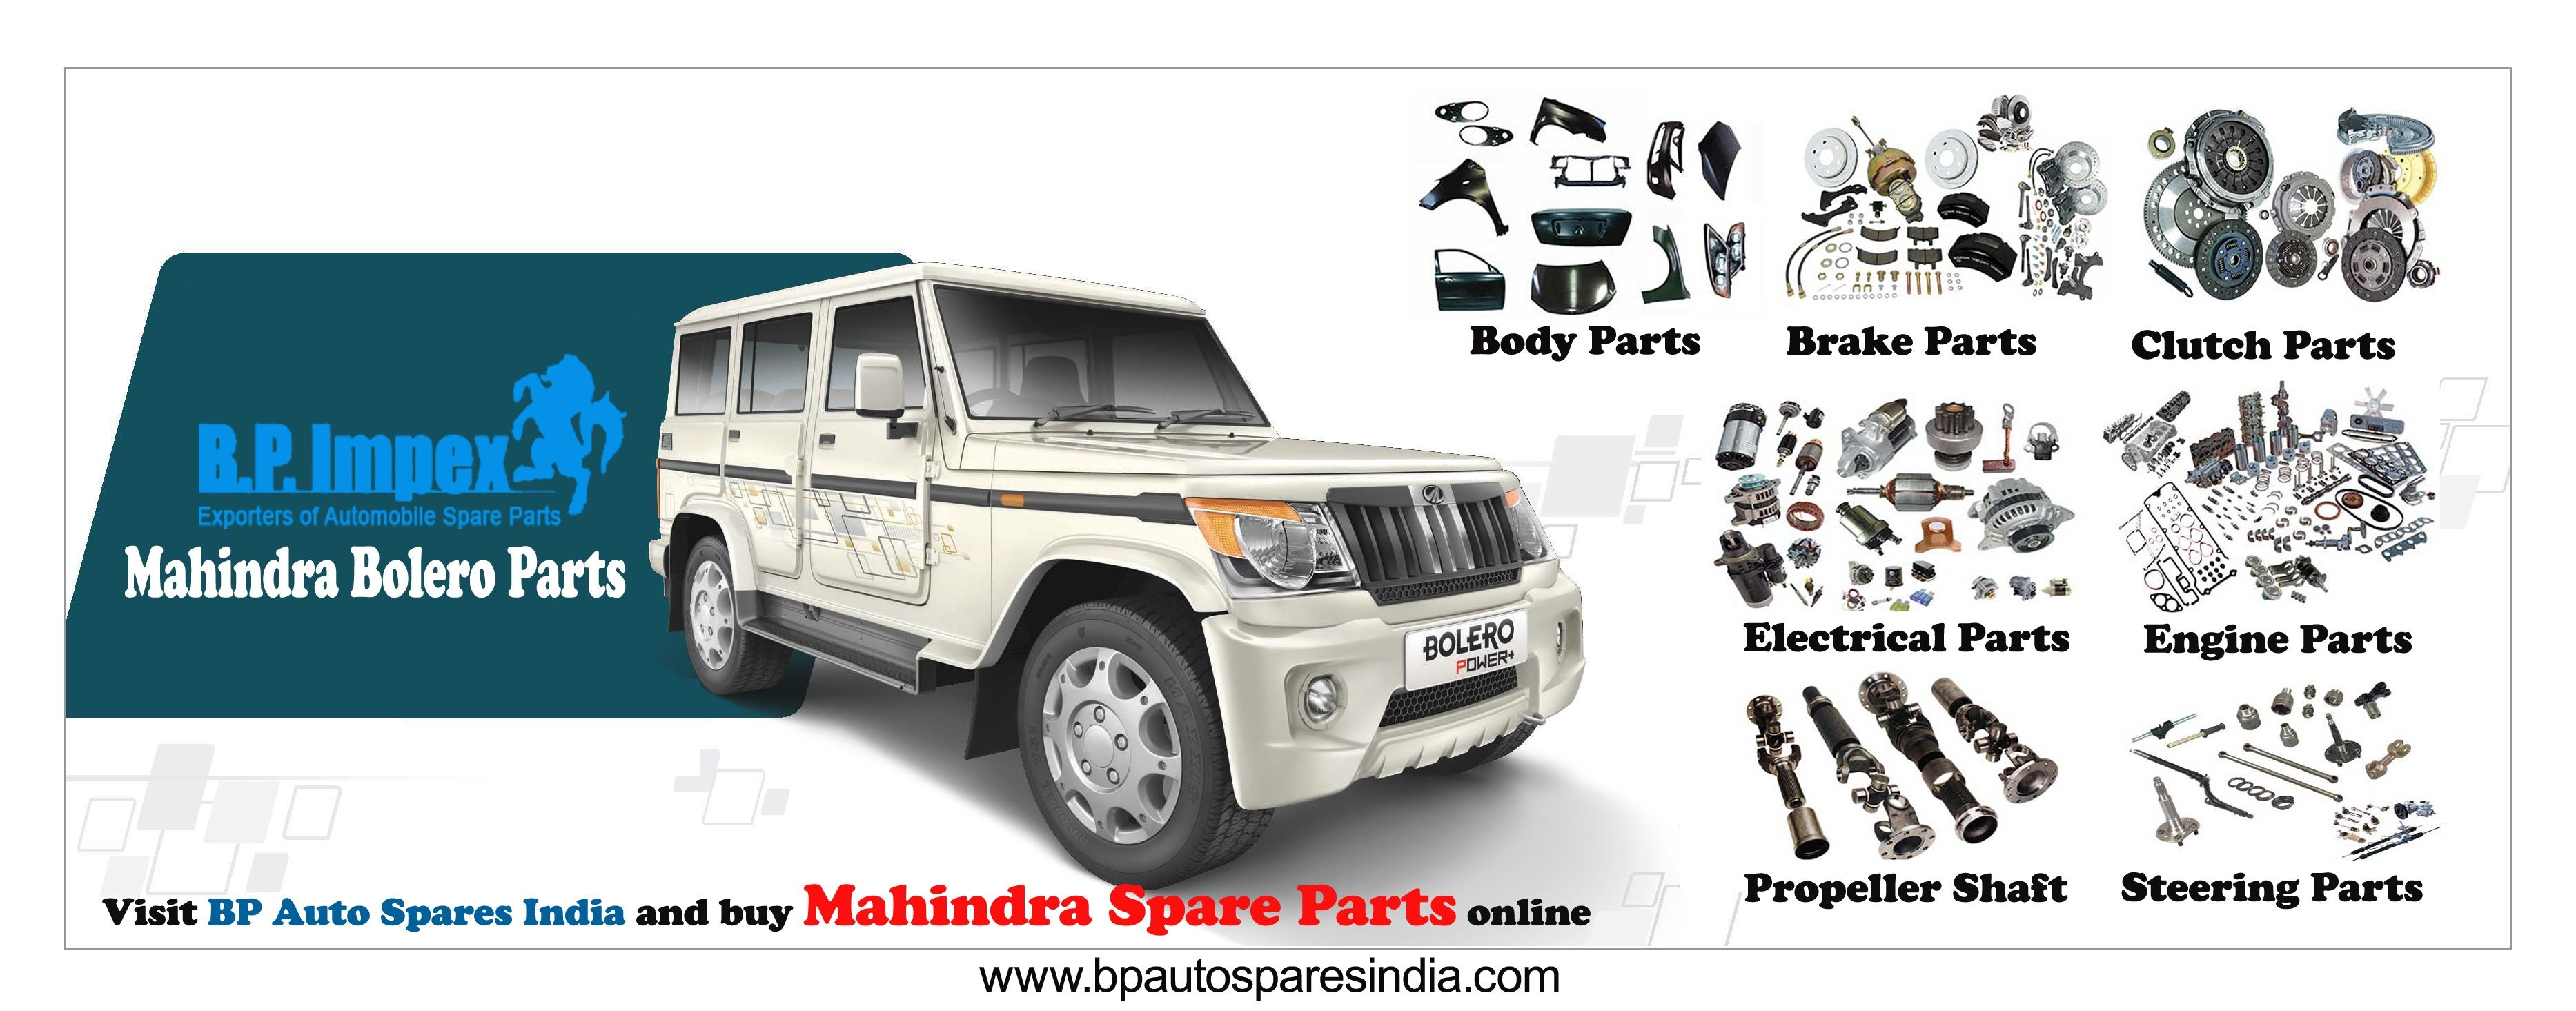 Visit bp auto spares india and buy mahindra bolero parts online from the large assortment of genuine and original spare parts for all the mahindra bolero